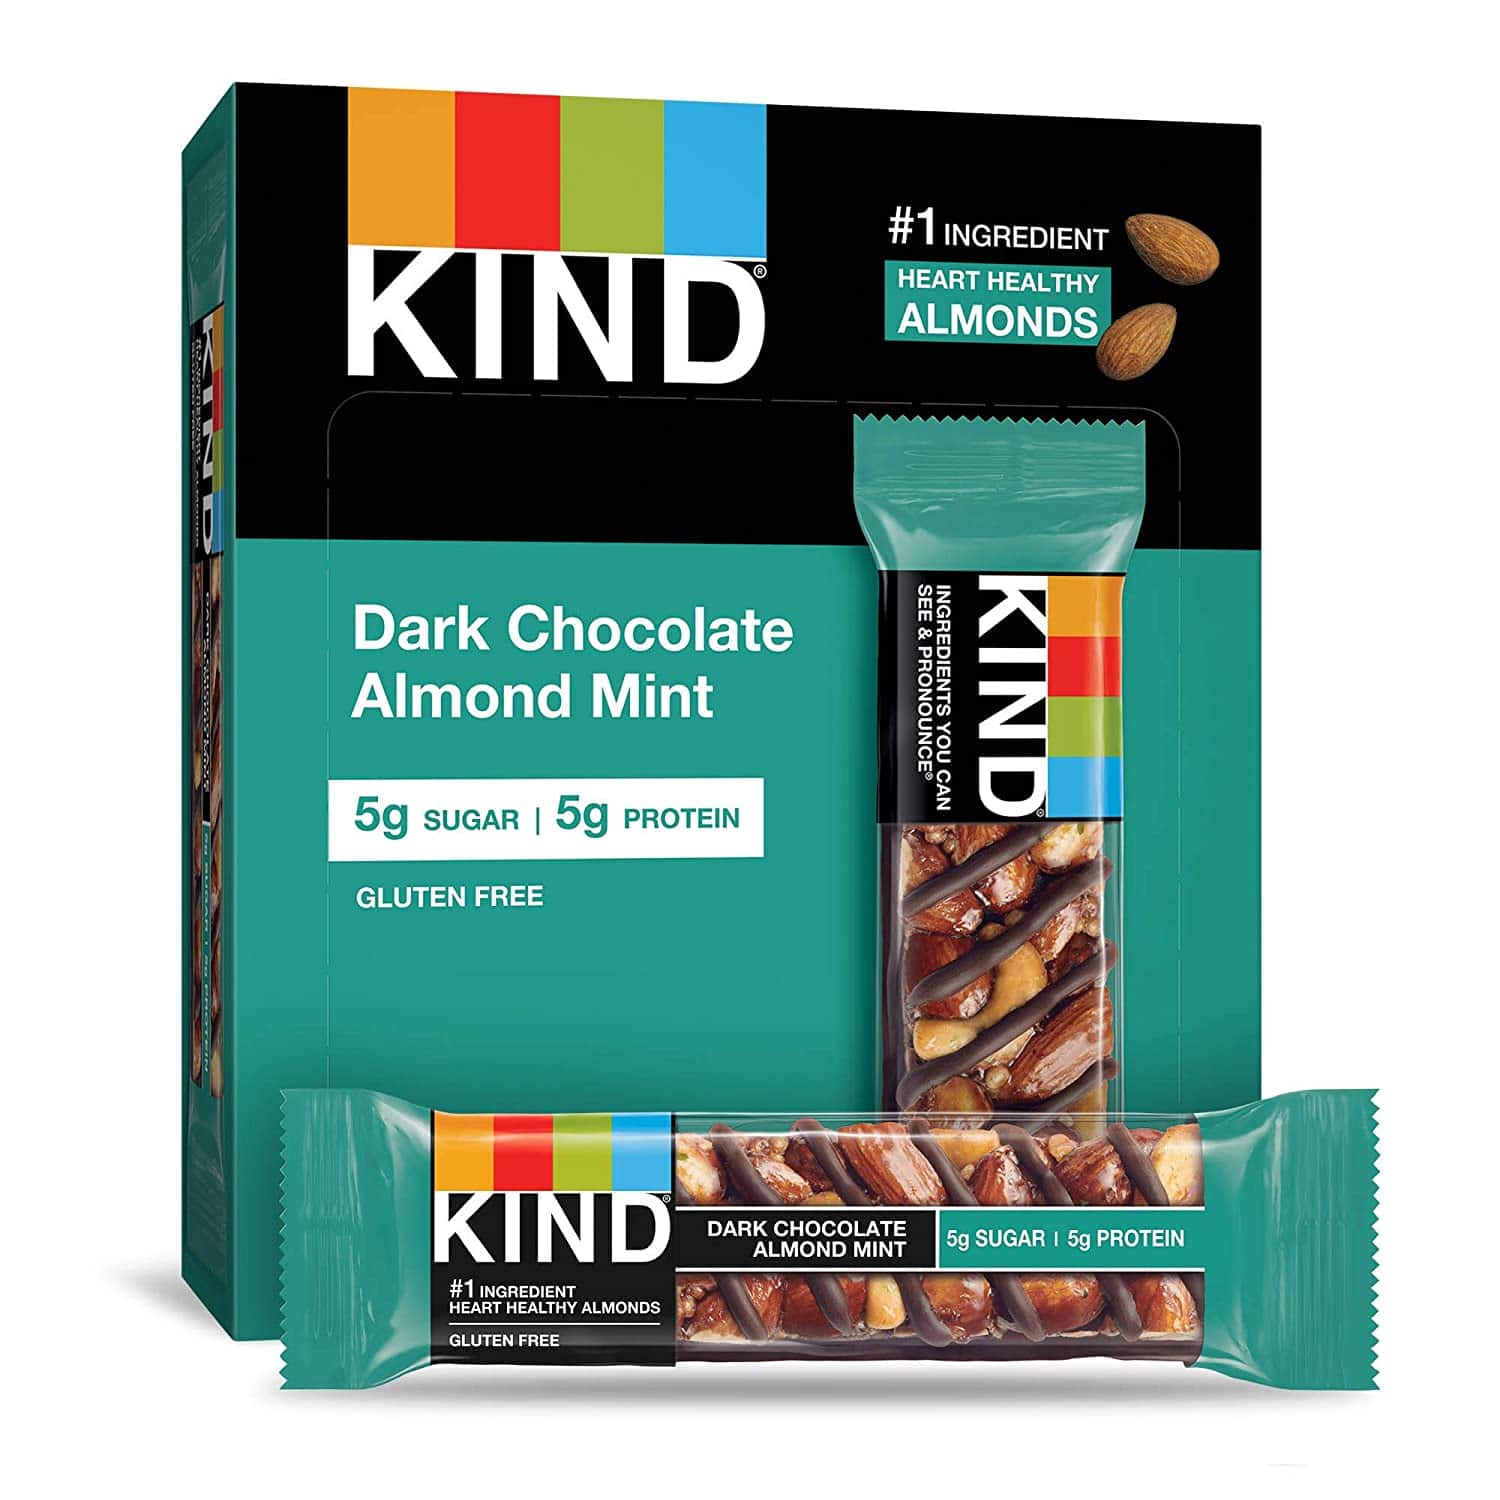 12-Count 1.4-Oz KIND Bar (Dark Chocolate Almond Mint) $8.79 w/ S&S + Free Shipping w/ Prime or on $25+